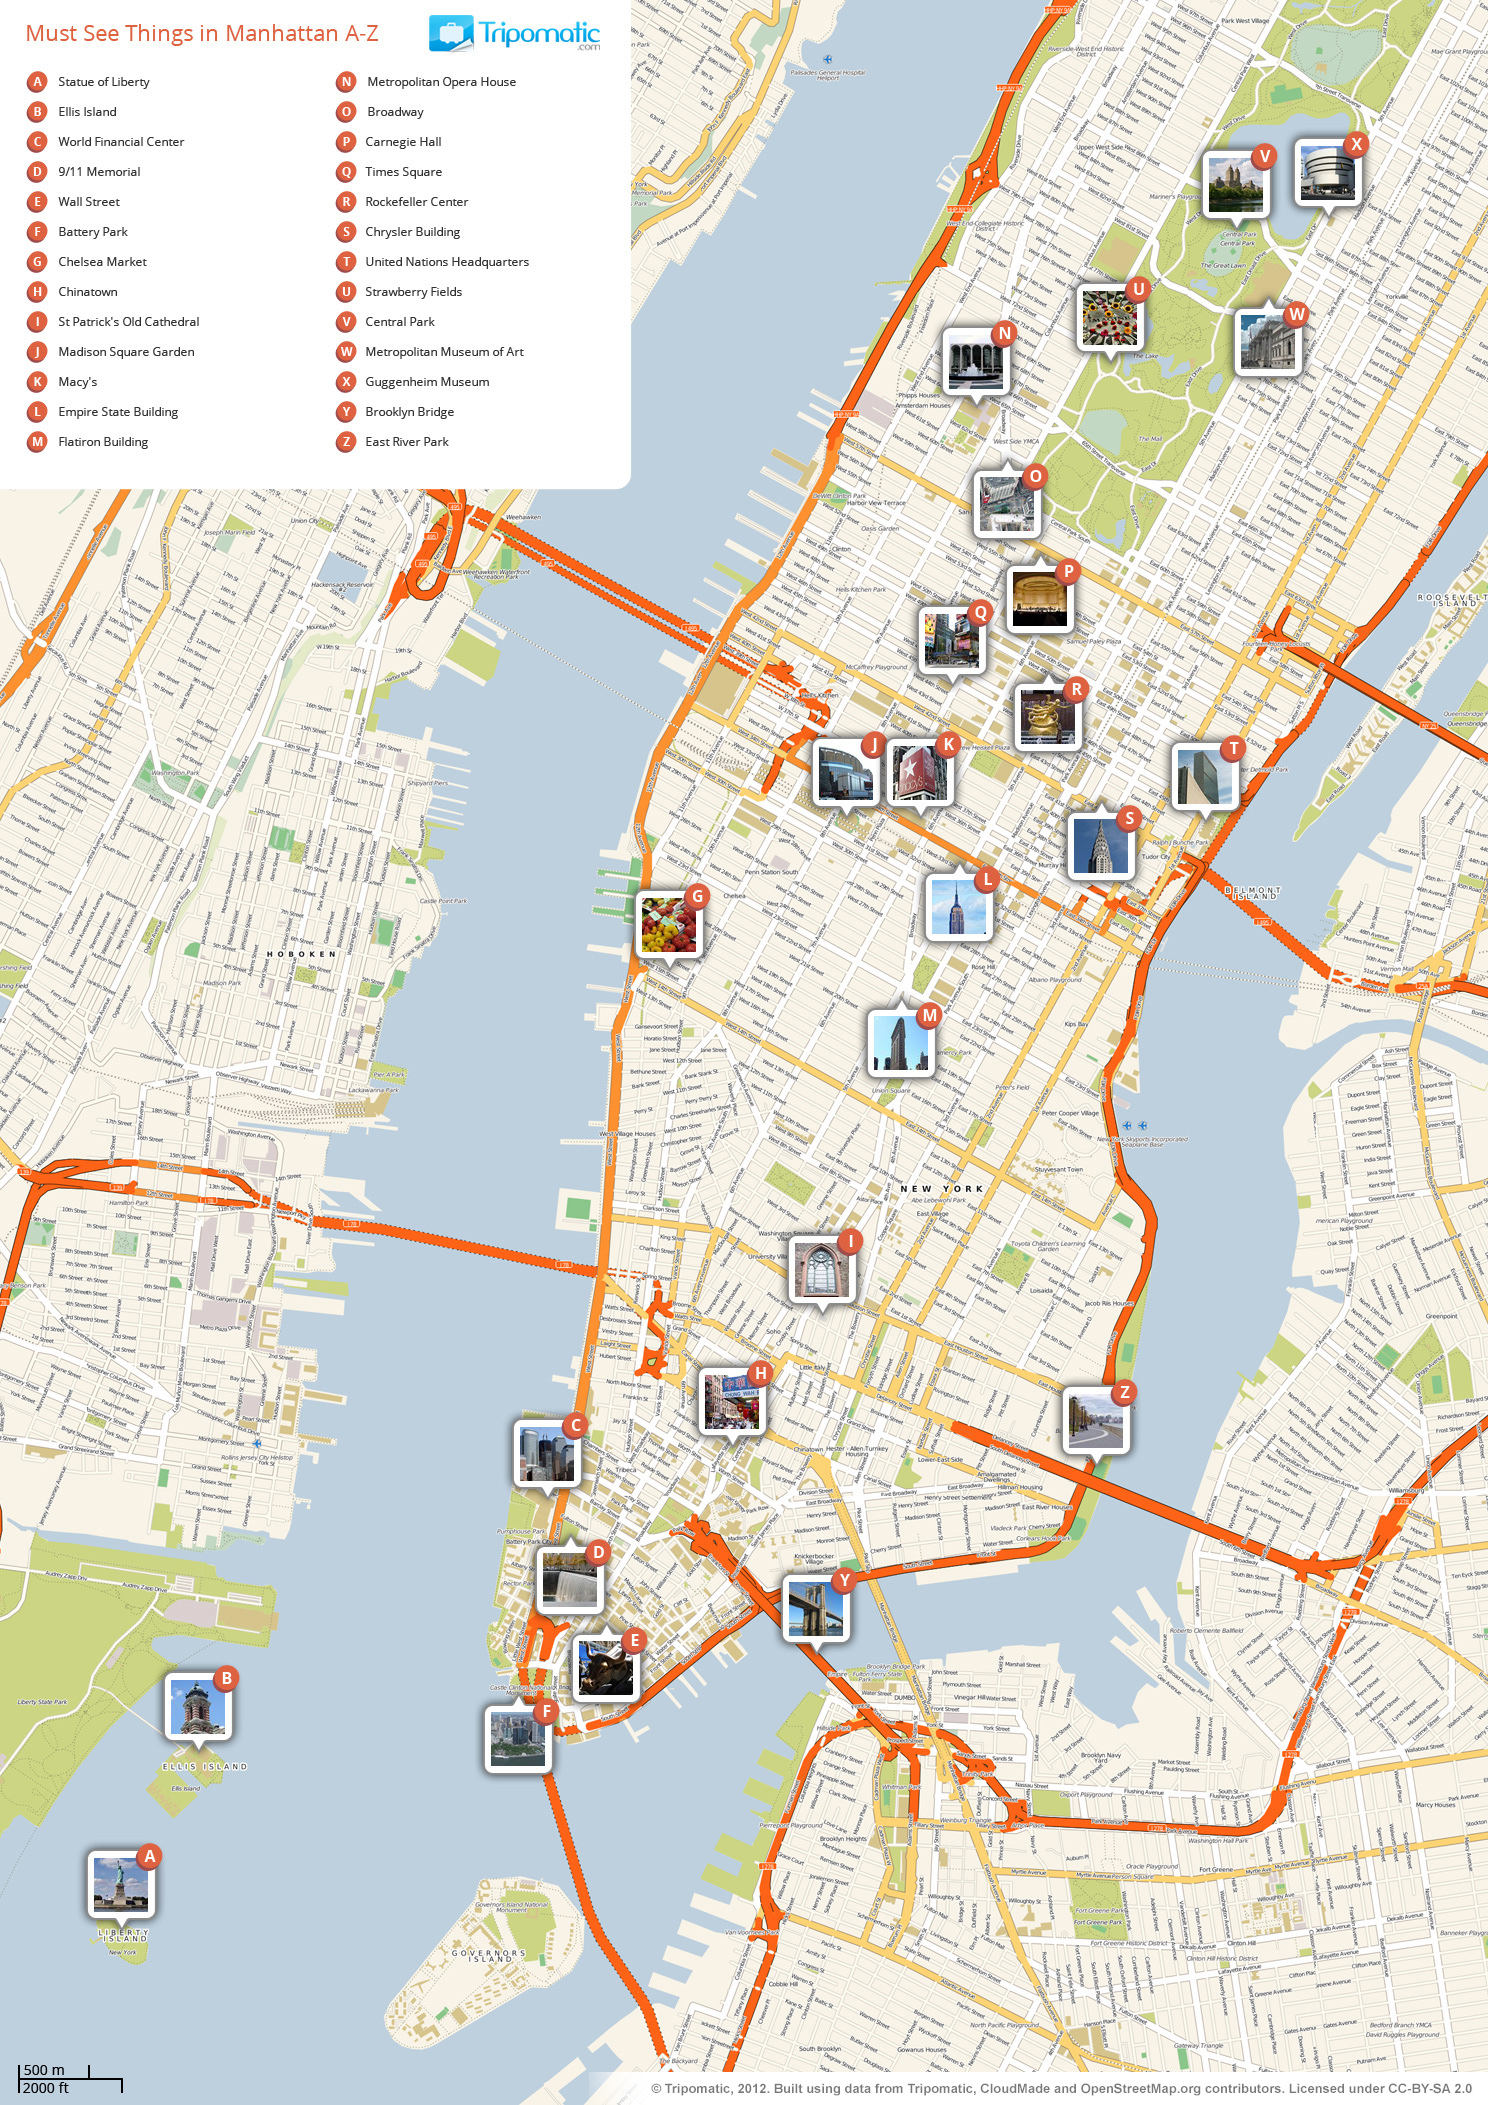 File:new York Manhattan Printable Tourist Attractions Map - Printable Map Of Manhattan Tourist Attractions